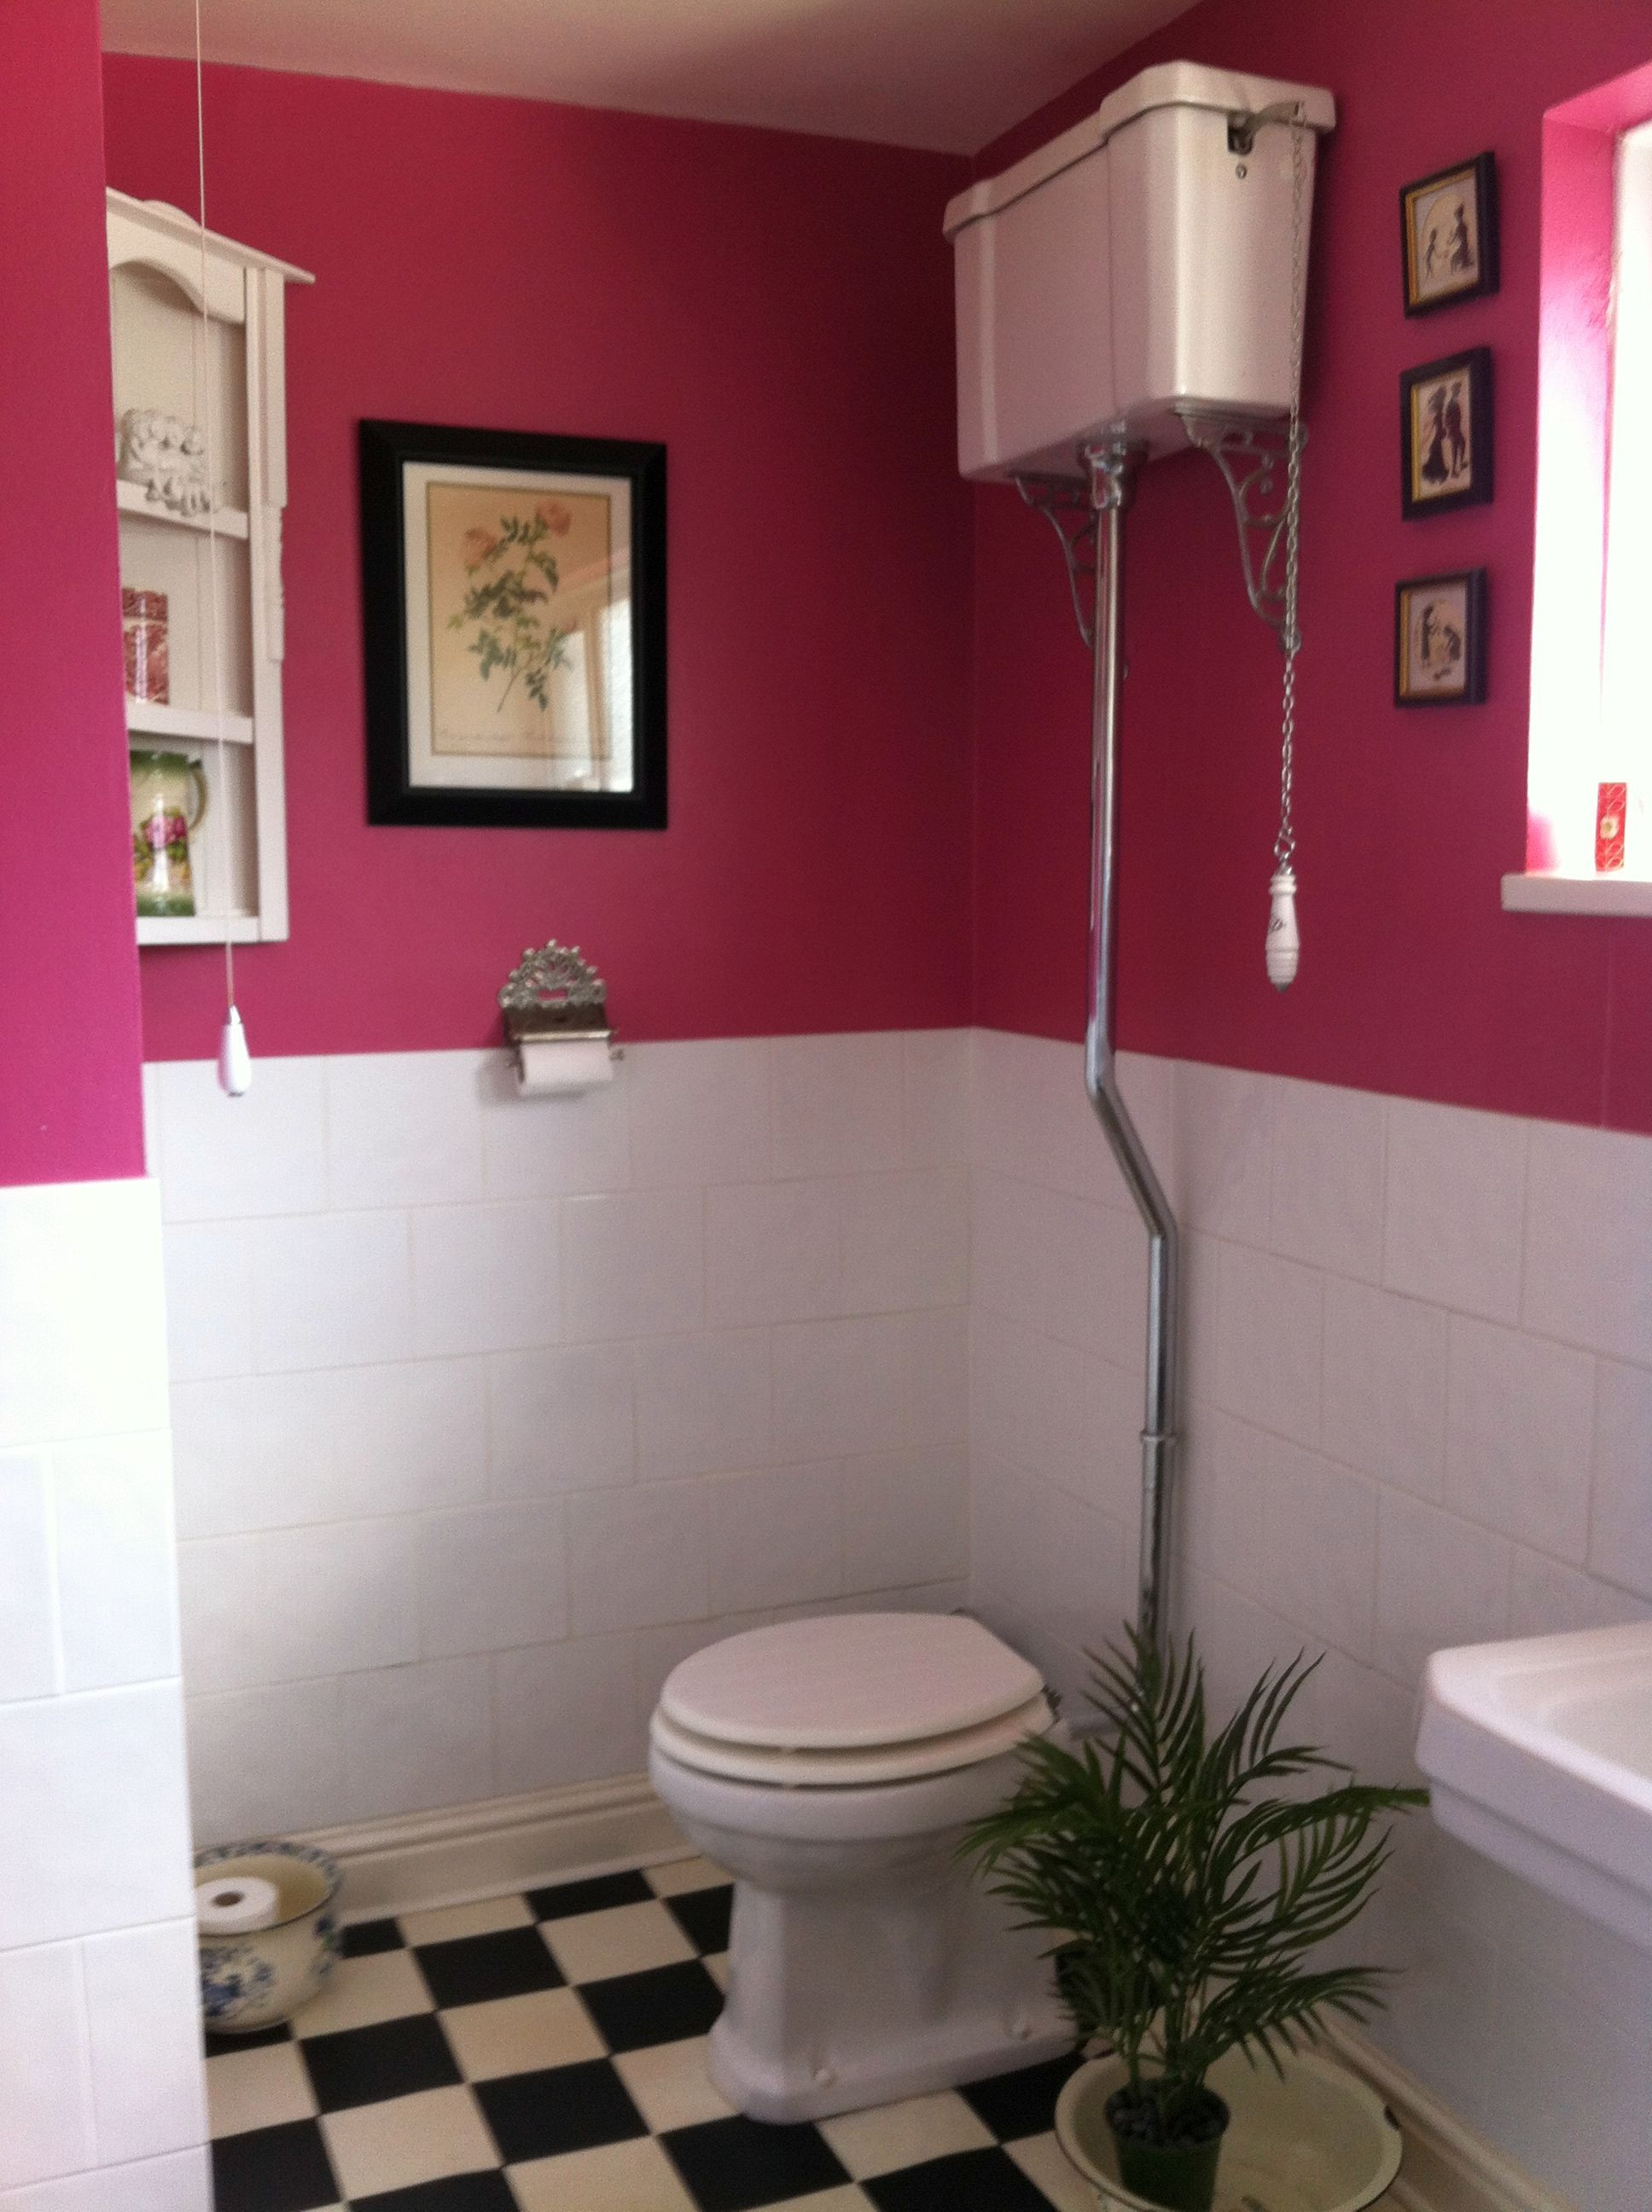 Edwardian style toilet with high cistern